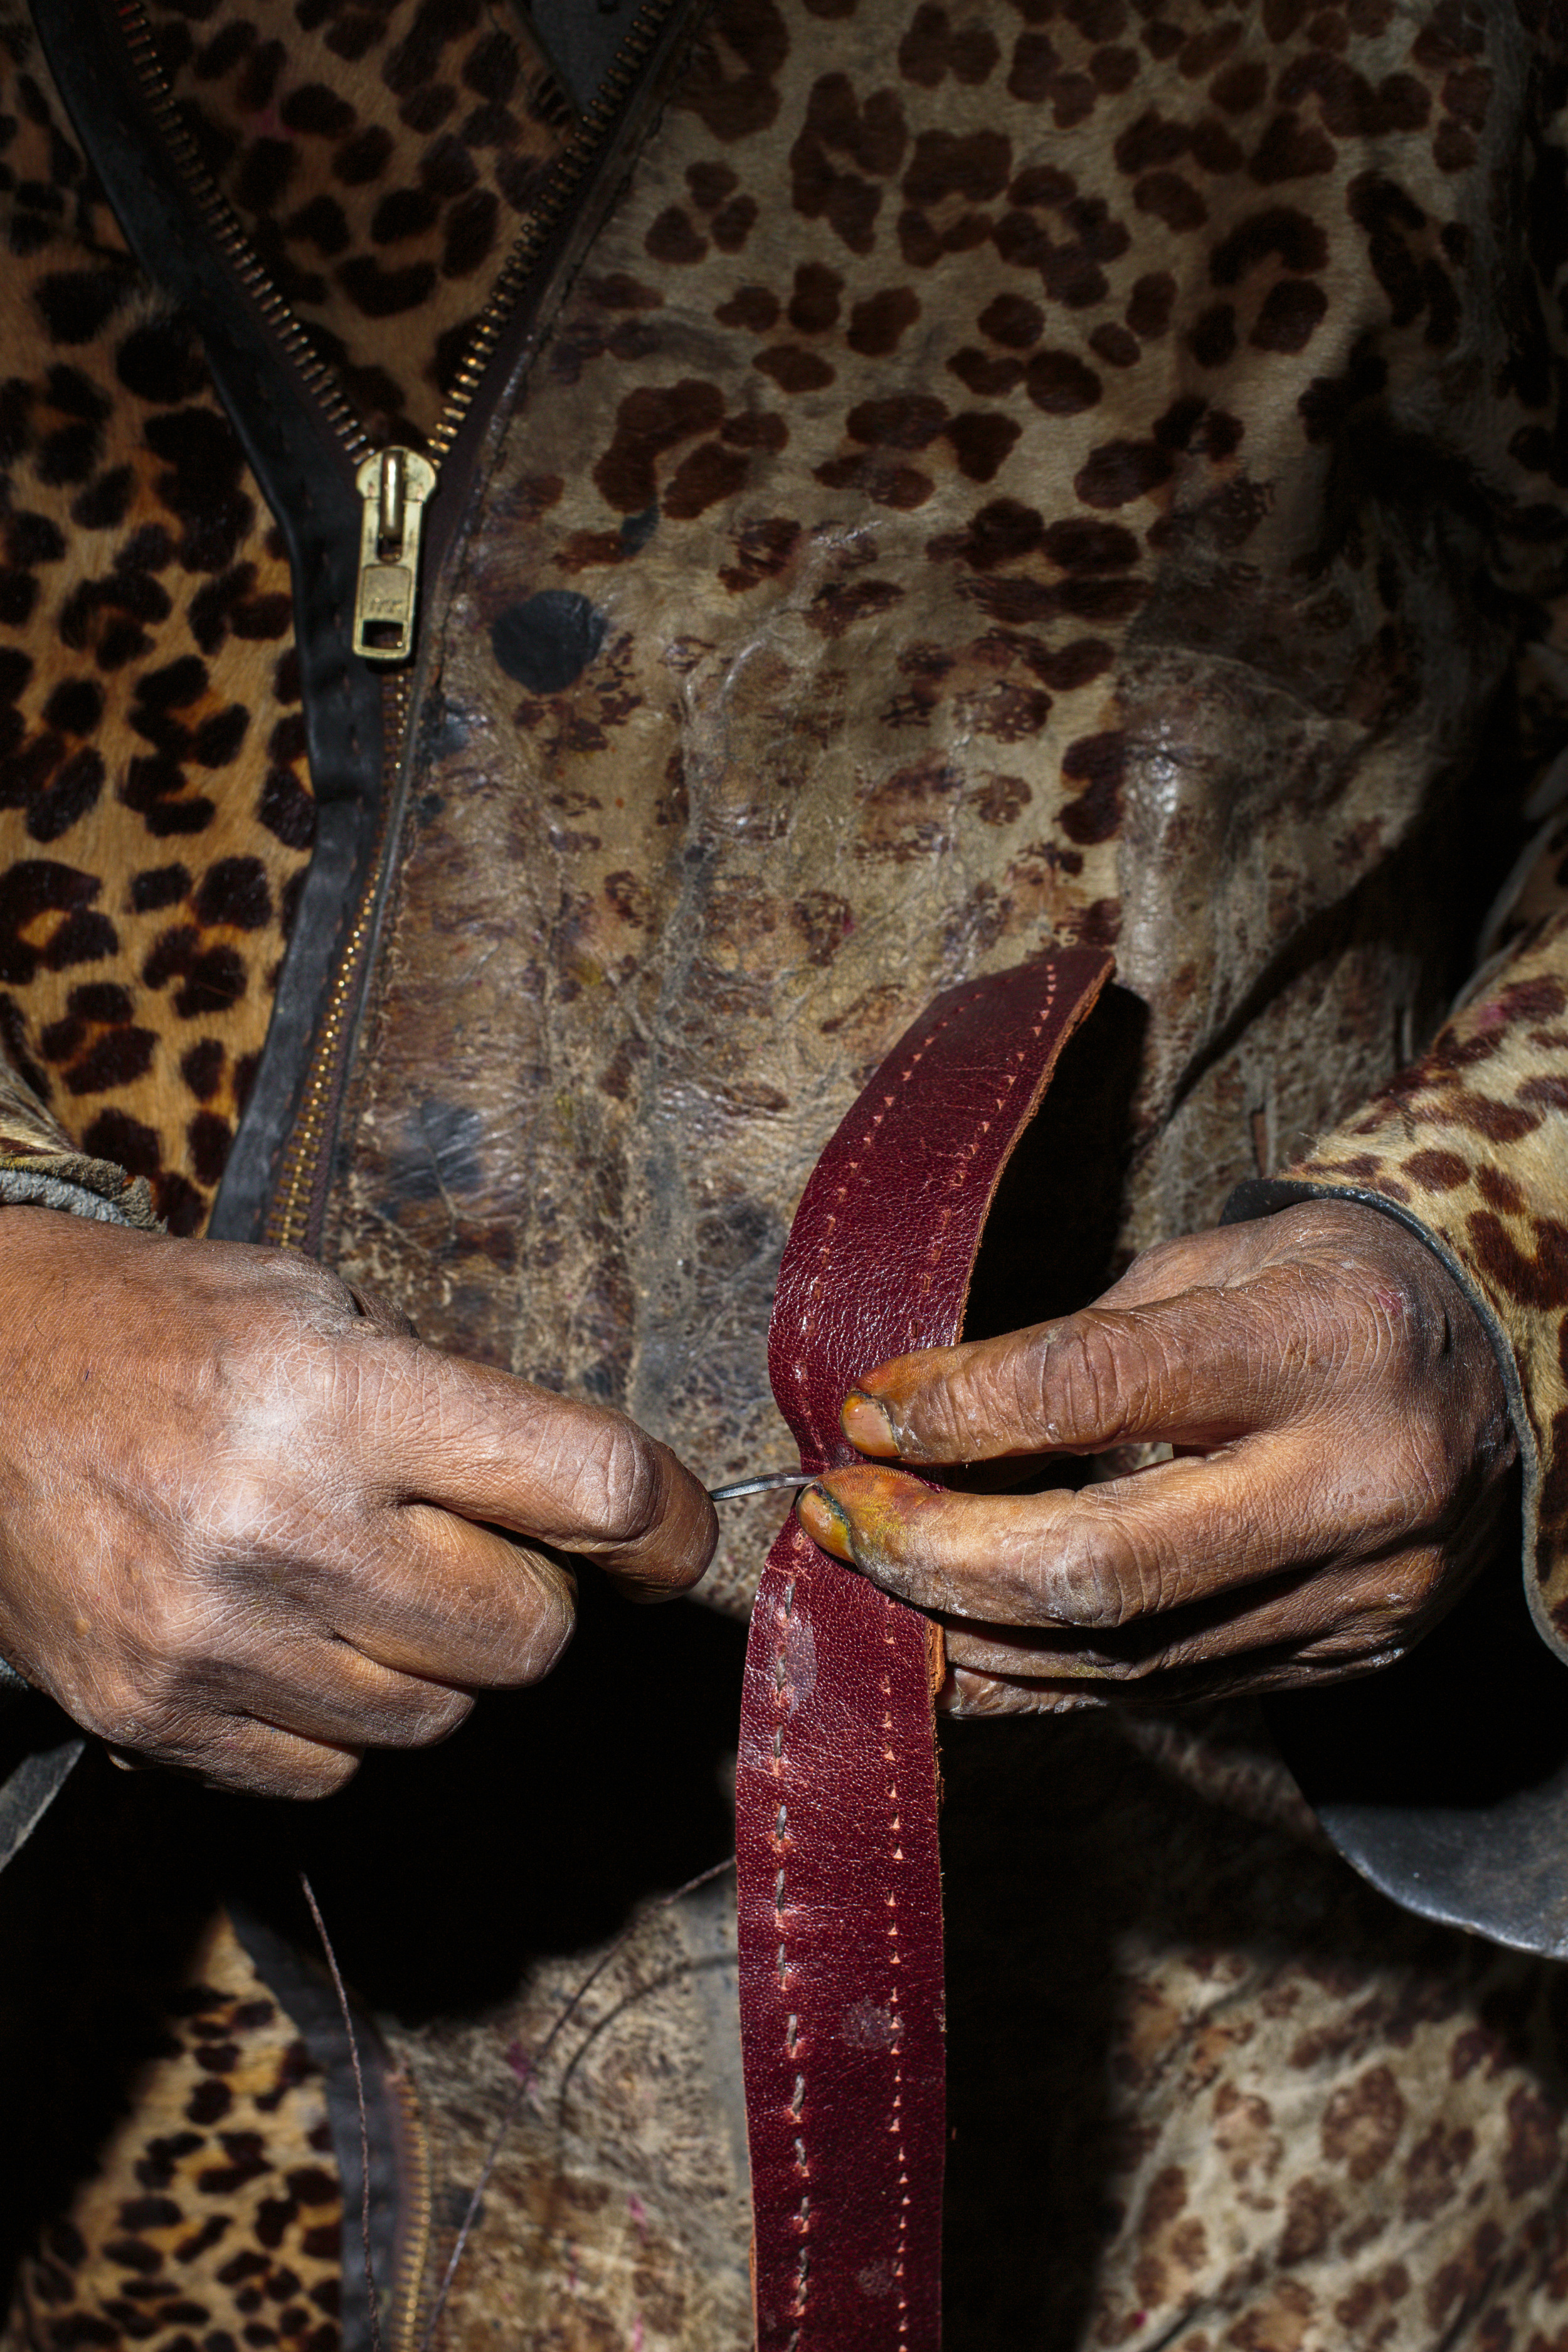 New York, USA - October 31, 2015: The hands of street vendor James are seen while he crafts a leather belt. He sells his goods every night on a small table on 25 1st Ave. The Bowery, a street and neighborhood in Manhattan, once home for vagrants and a diversity of subcultures became the playground of artists, fancy bars and real-estate tycoons.